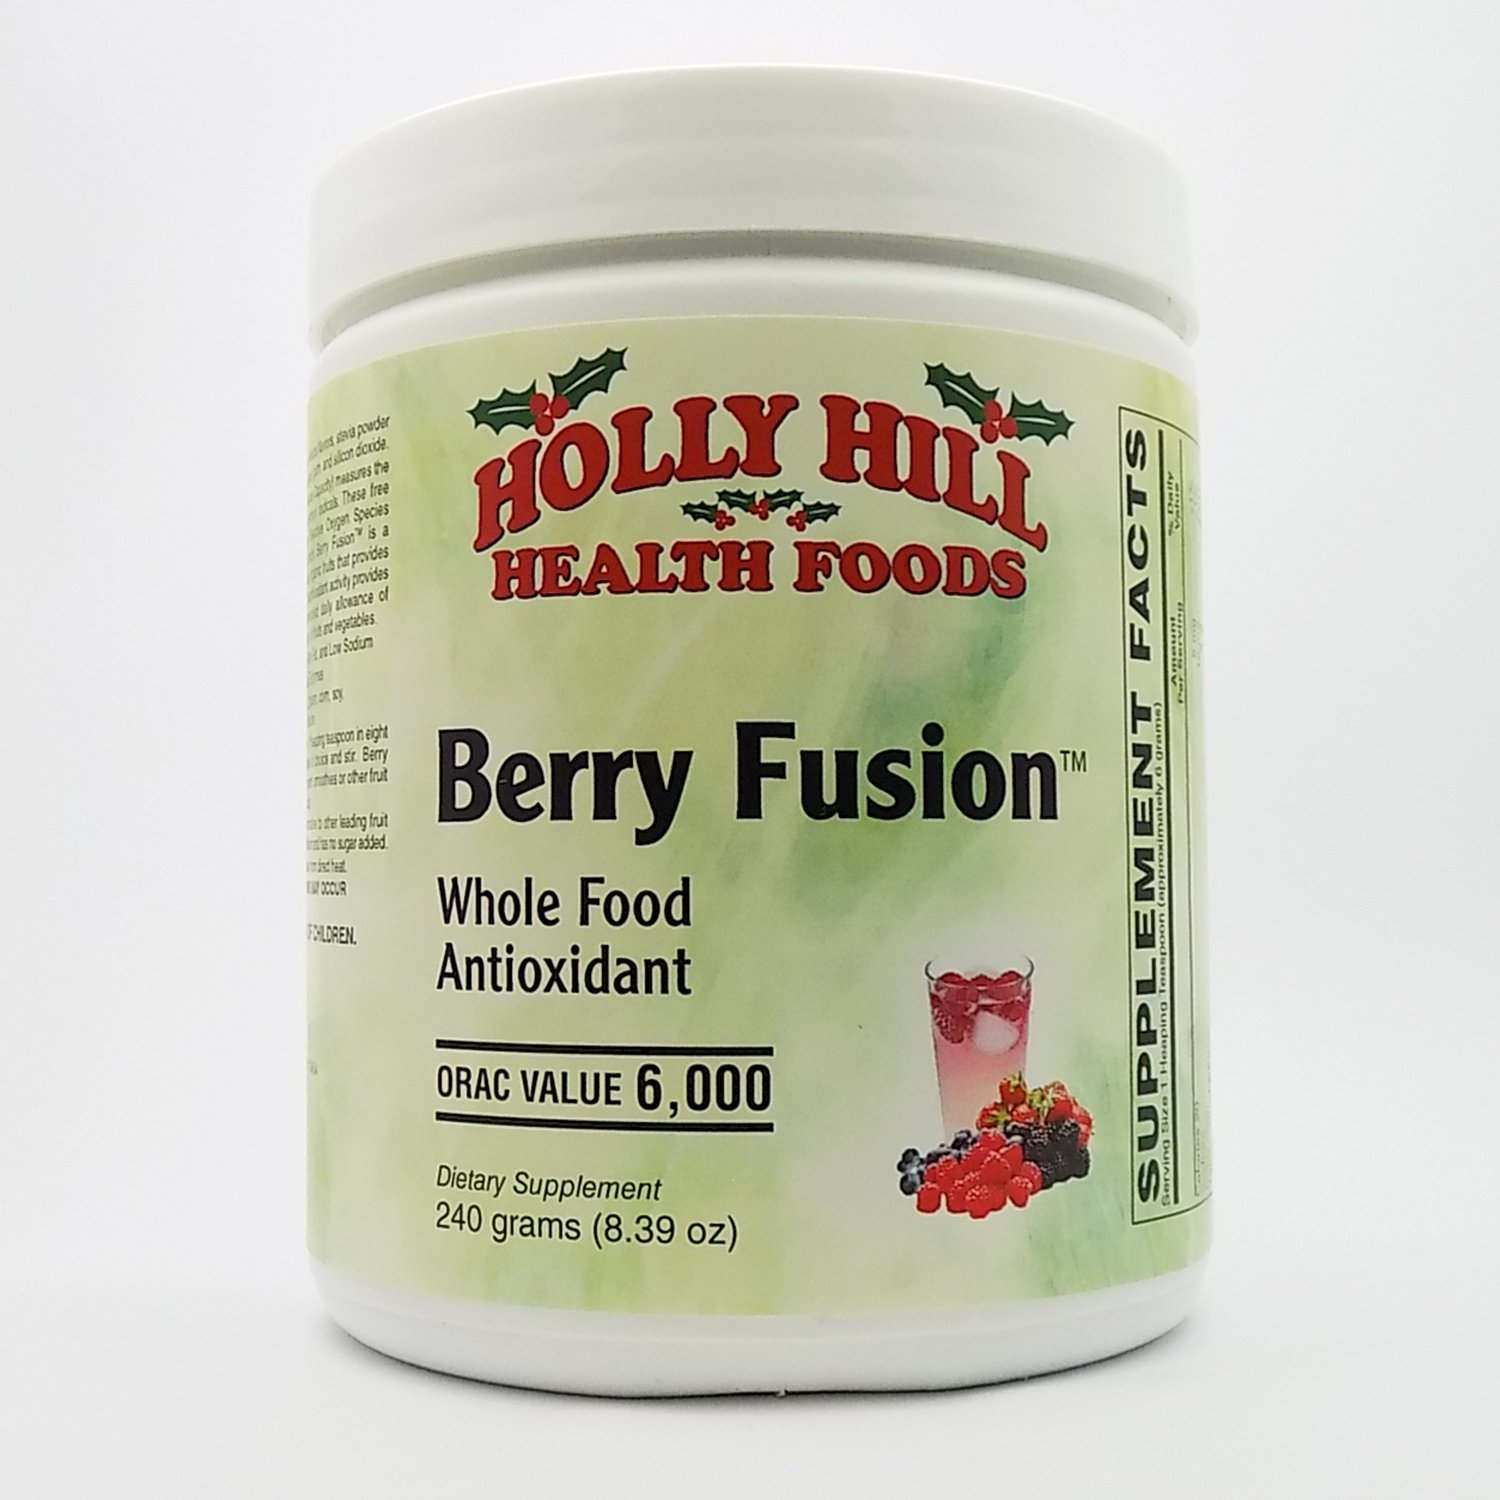 Amazon.com: Holly Hill Salud Alimentos, Berry Fusion ...